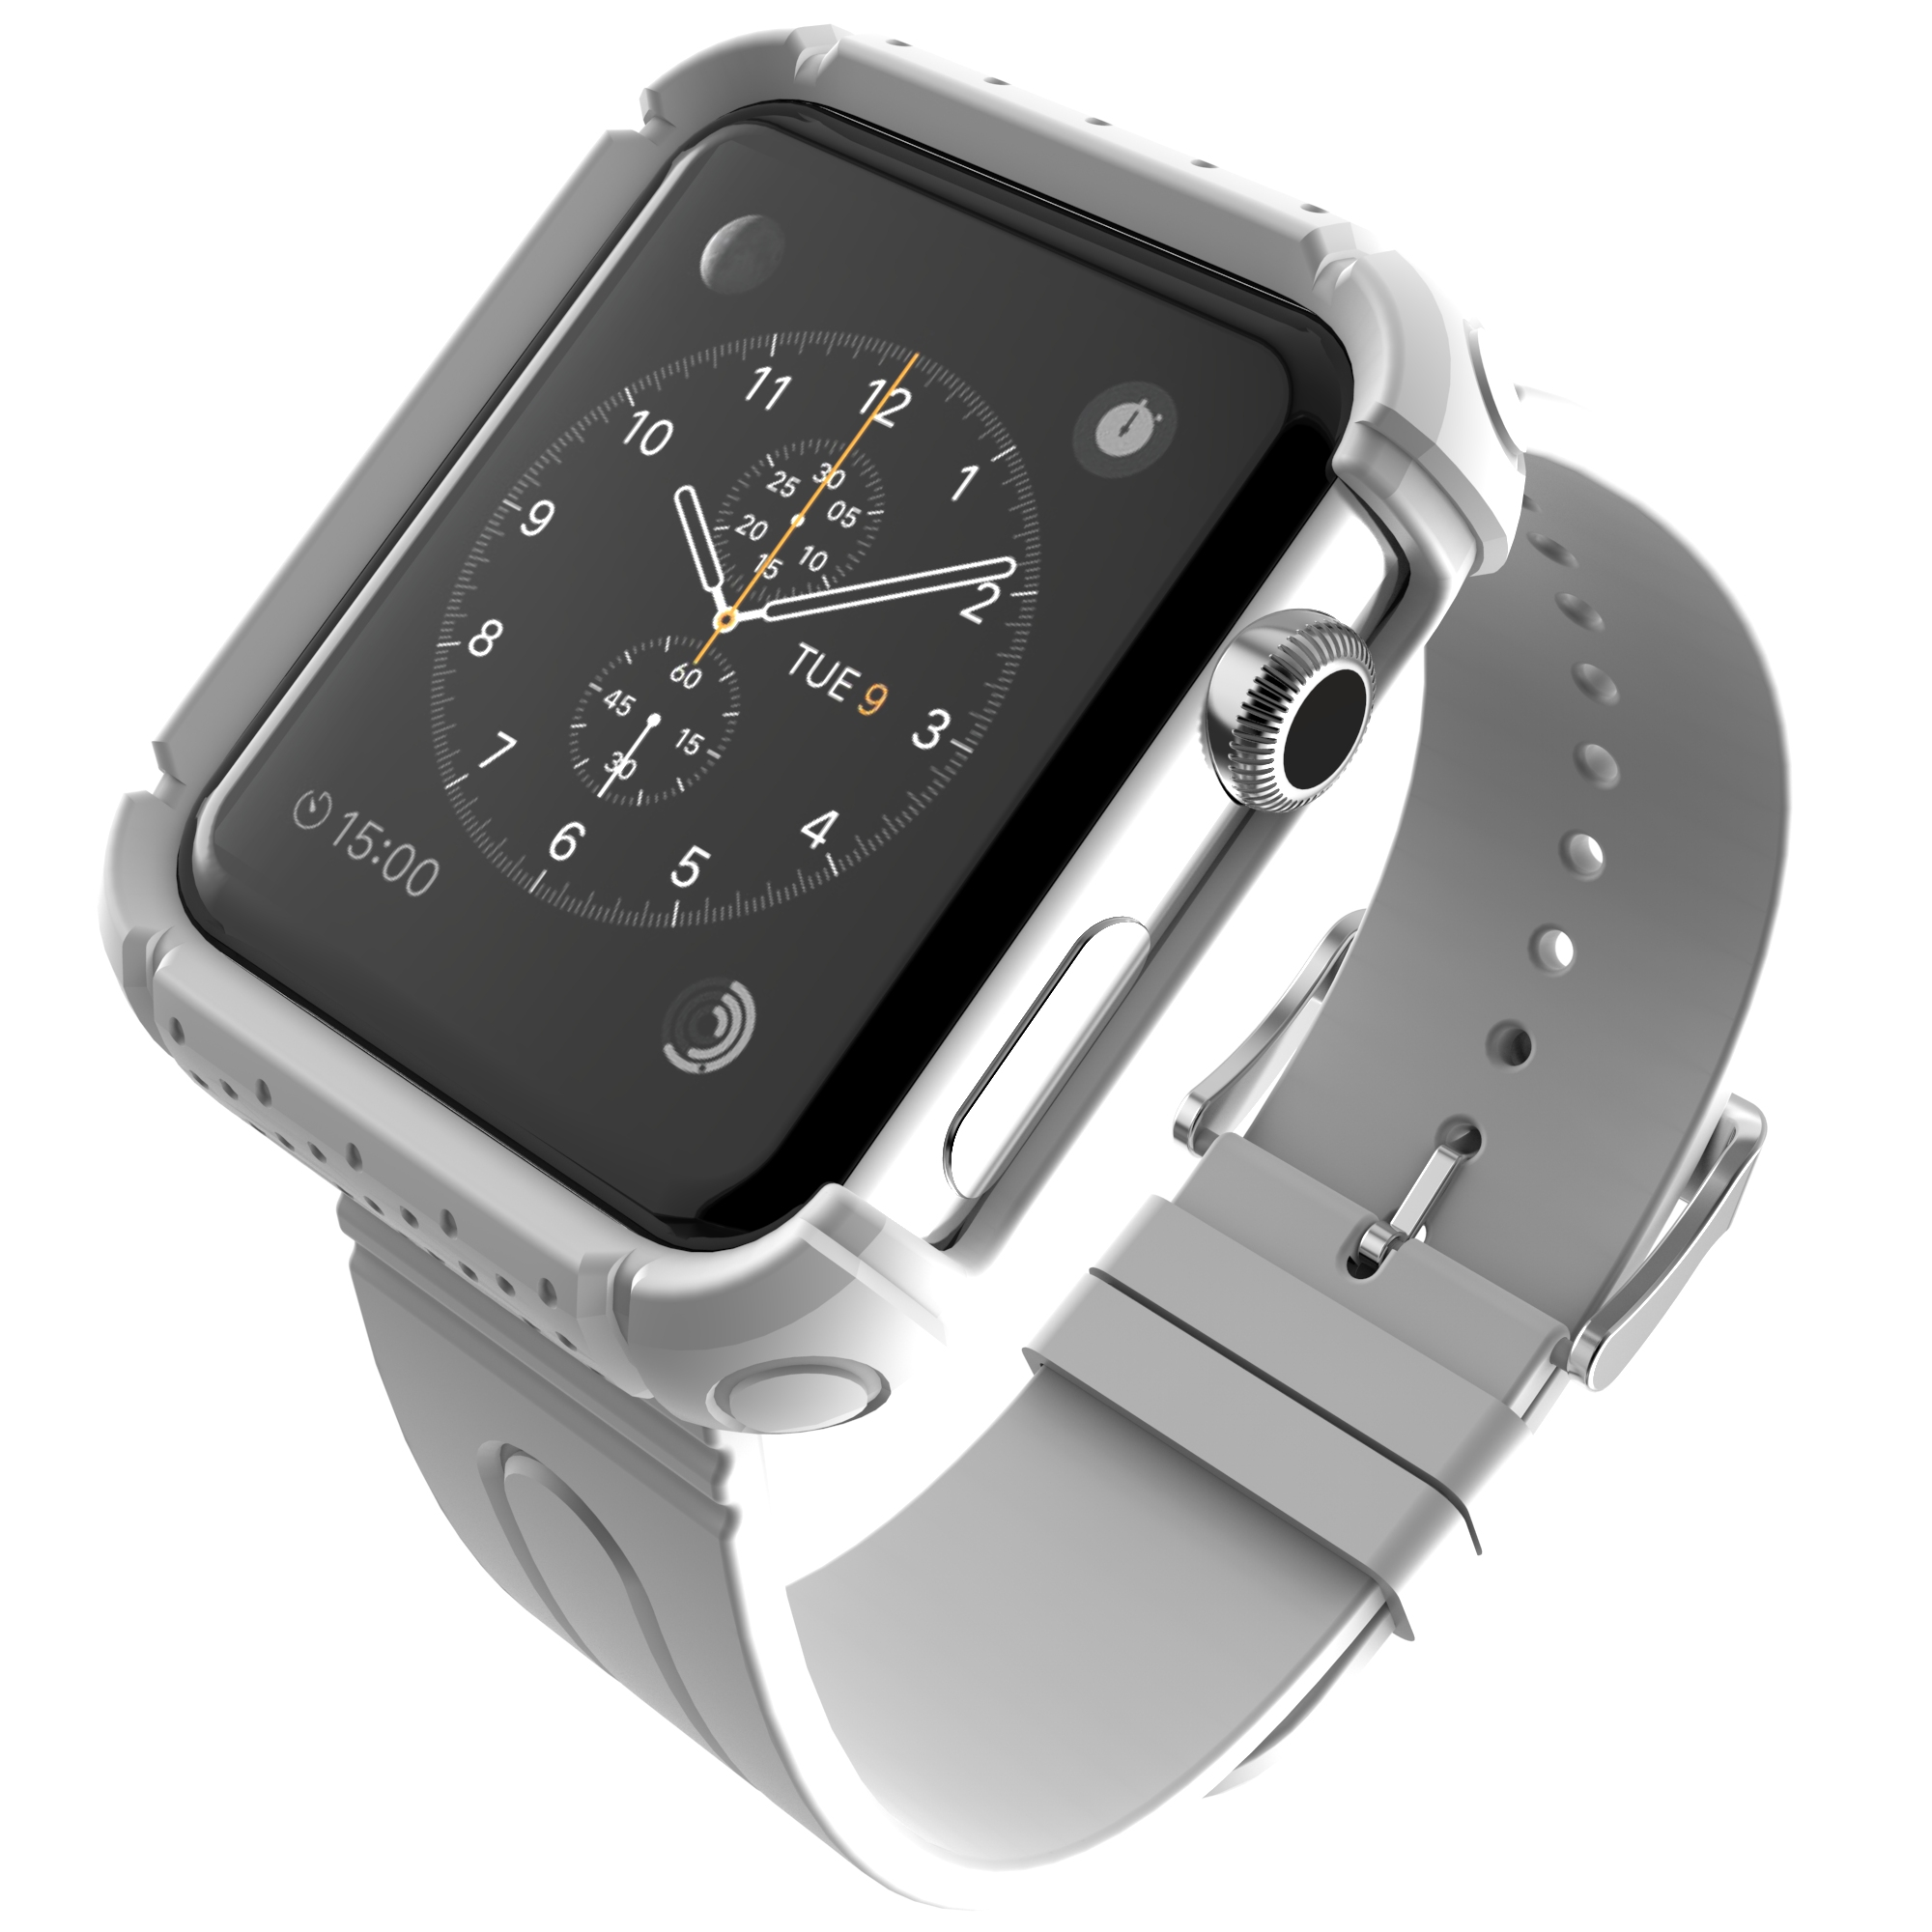 Fosmon for apple watch 38mm durable sport wrist strap bracelet band case cover ebay for Watches 38mm